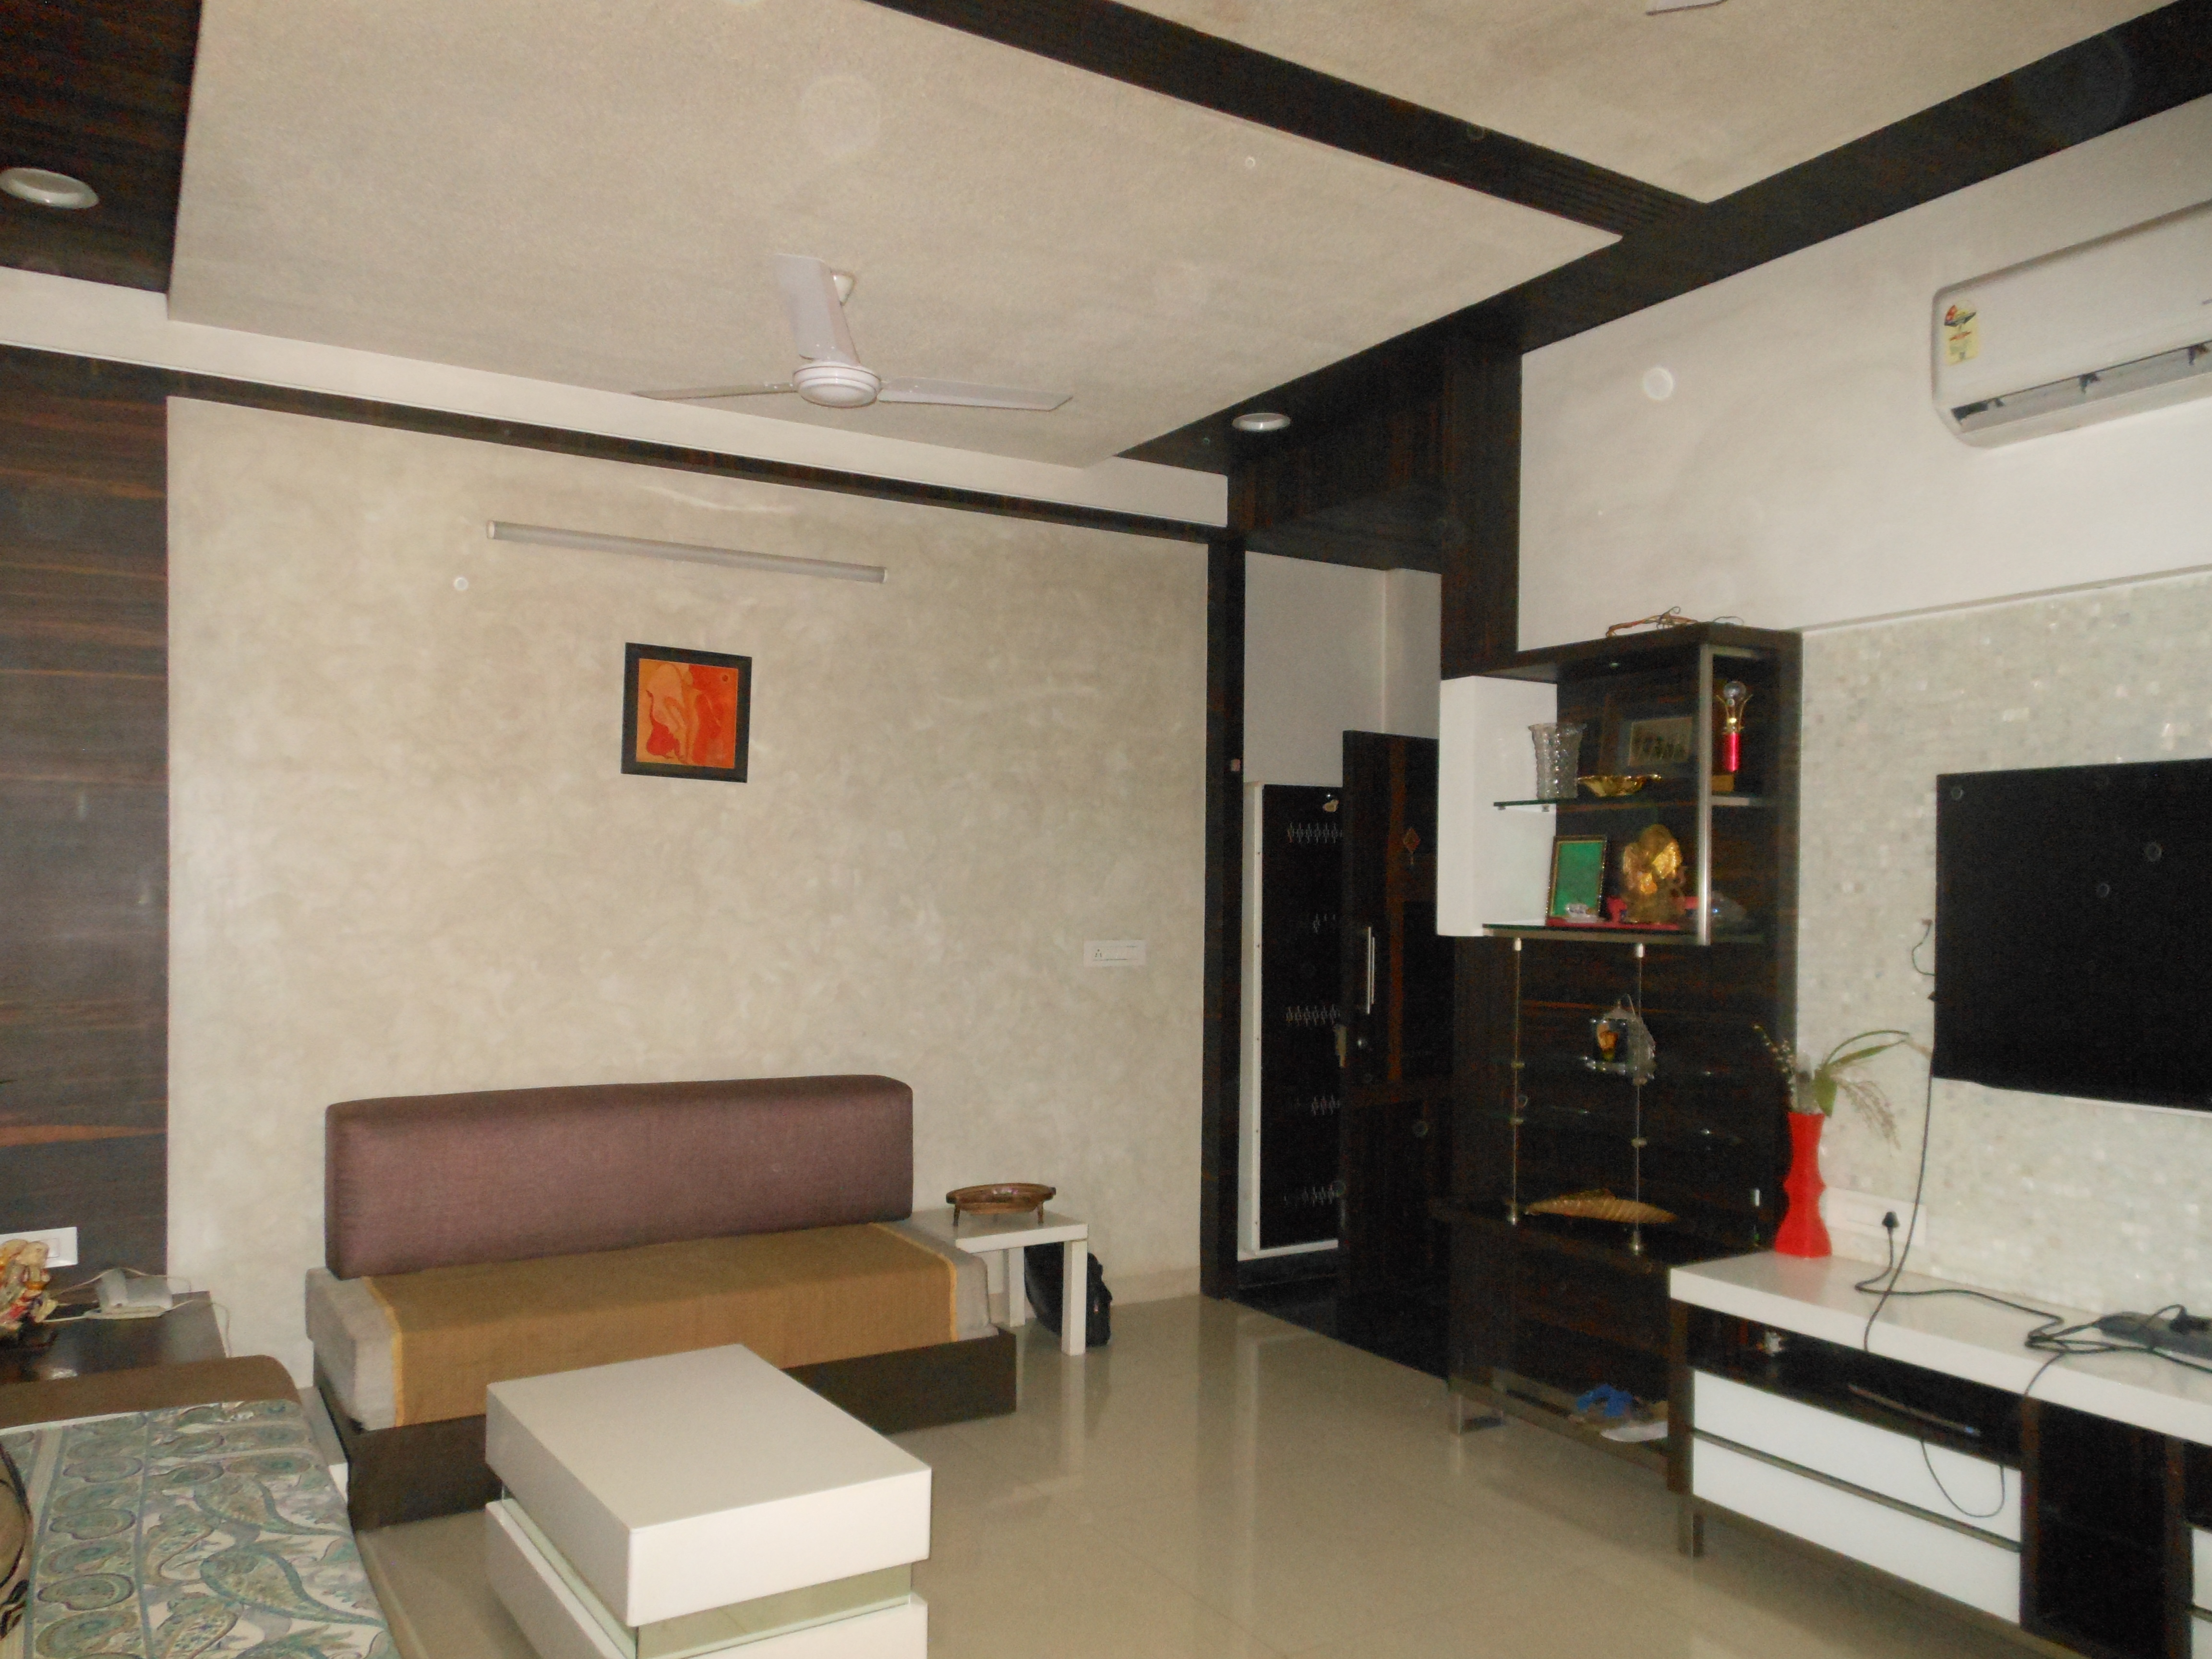 3 BHK furnished flat for sale at Shompole Apartment behind  : dscn0407 from remaxcorporateservices1.wordpress.com size 4608 x 3456 jpeg 3340kB